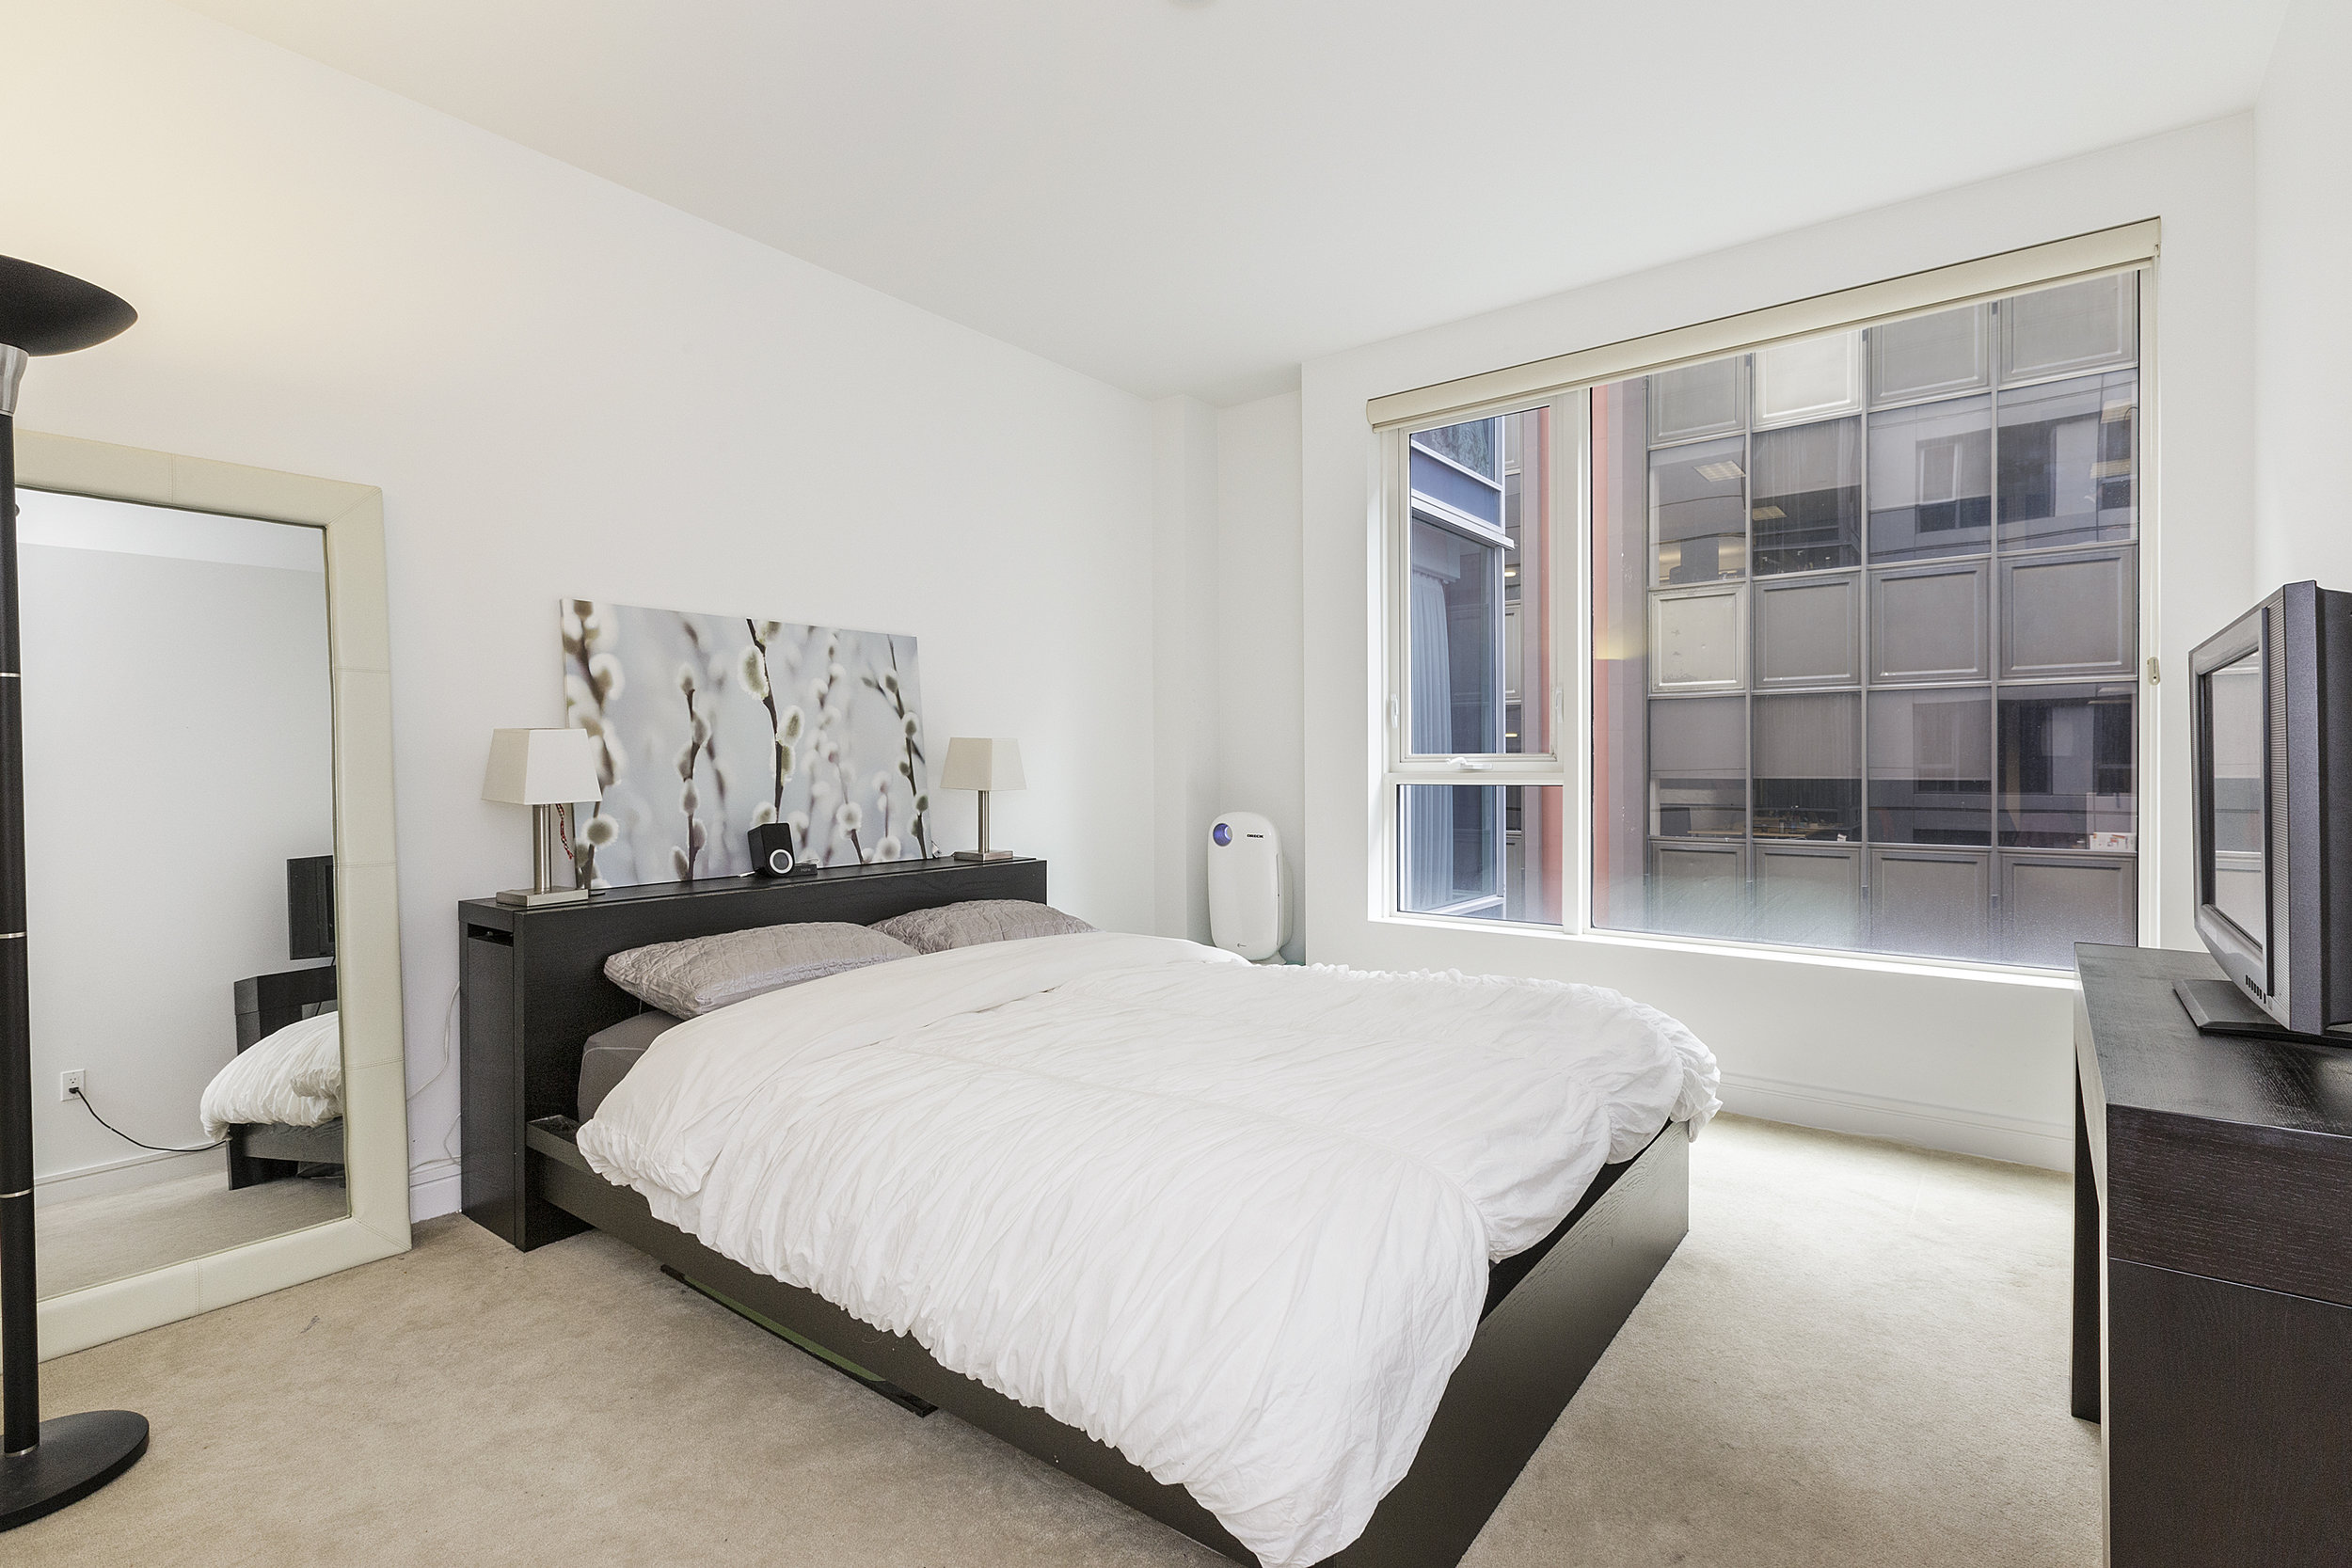 13-631Folsom5C-1bed-high-res.jpg